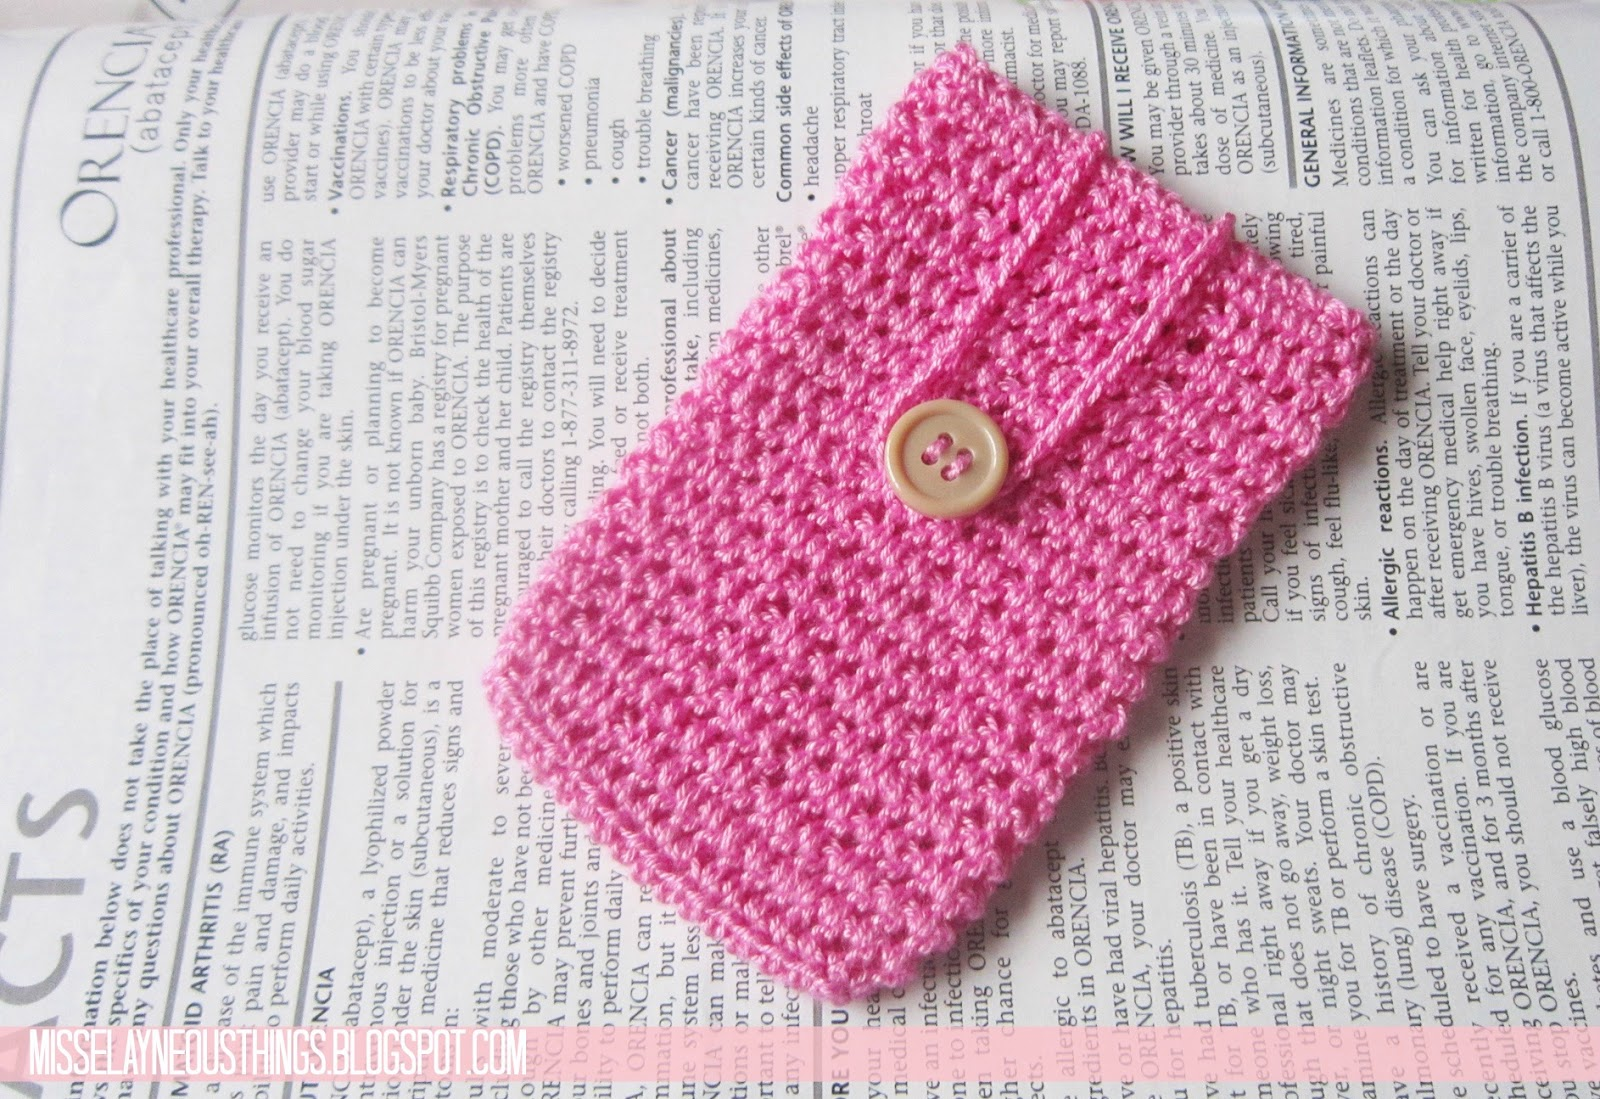 A Pink Crochet Cellphone Case A Blog About Misselayneous Things